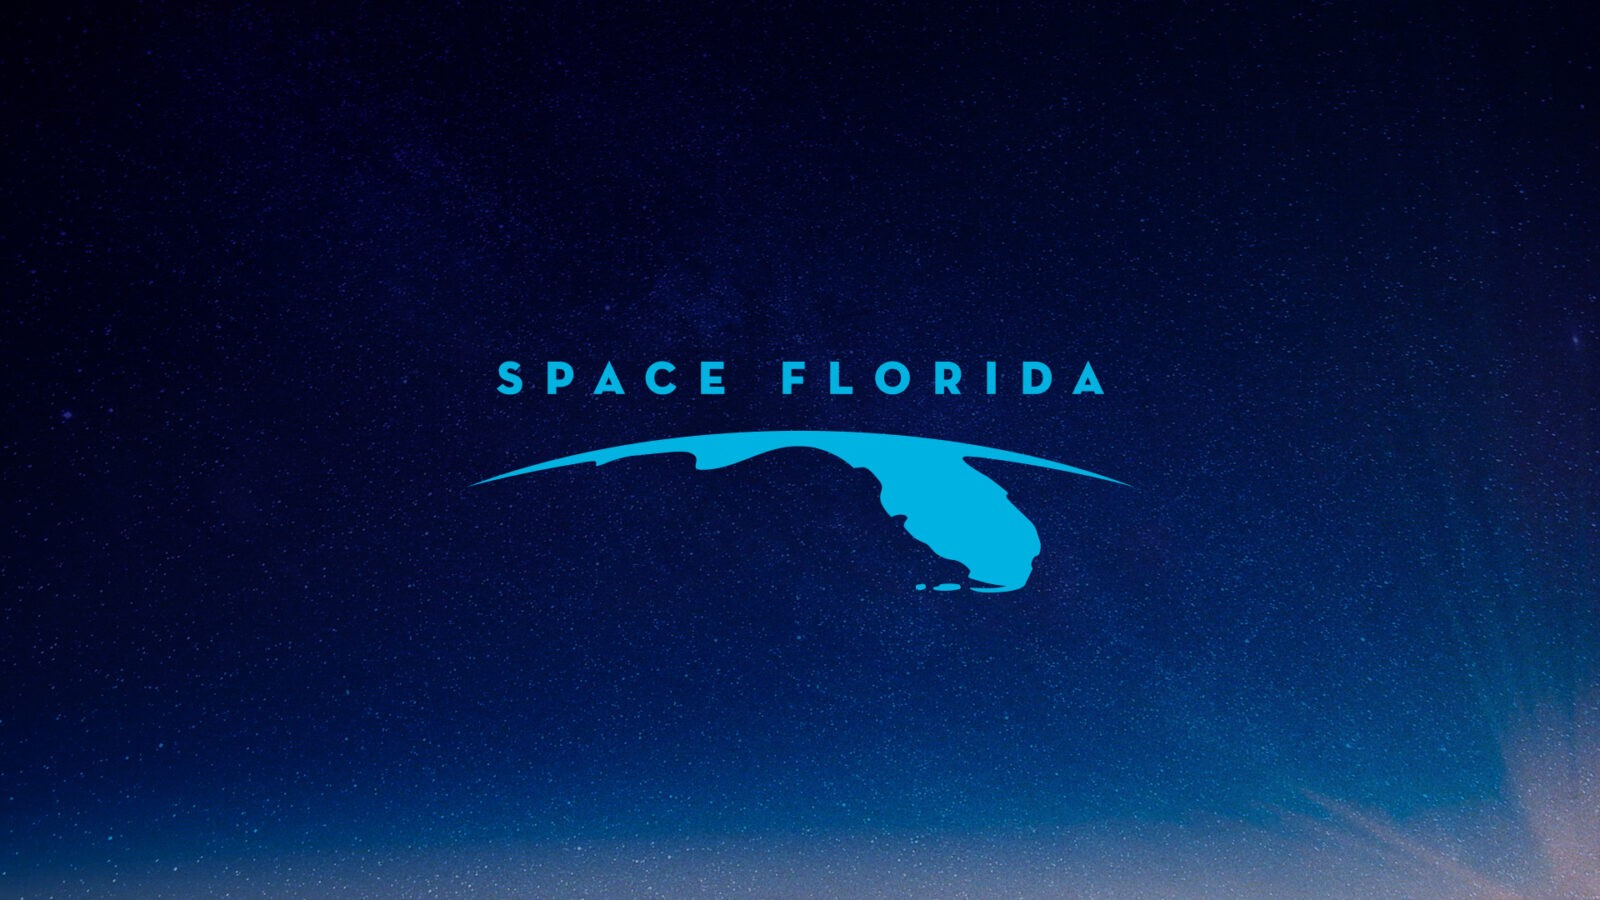 Space Florida 3rd Story